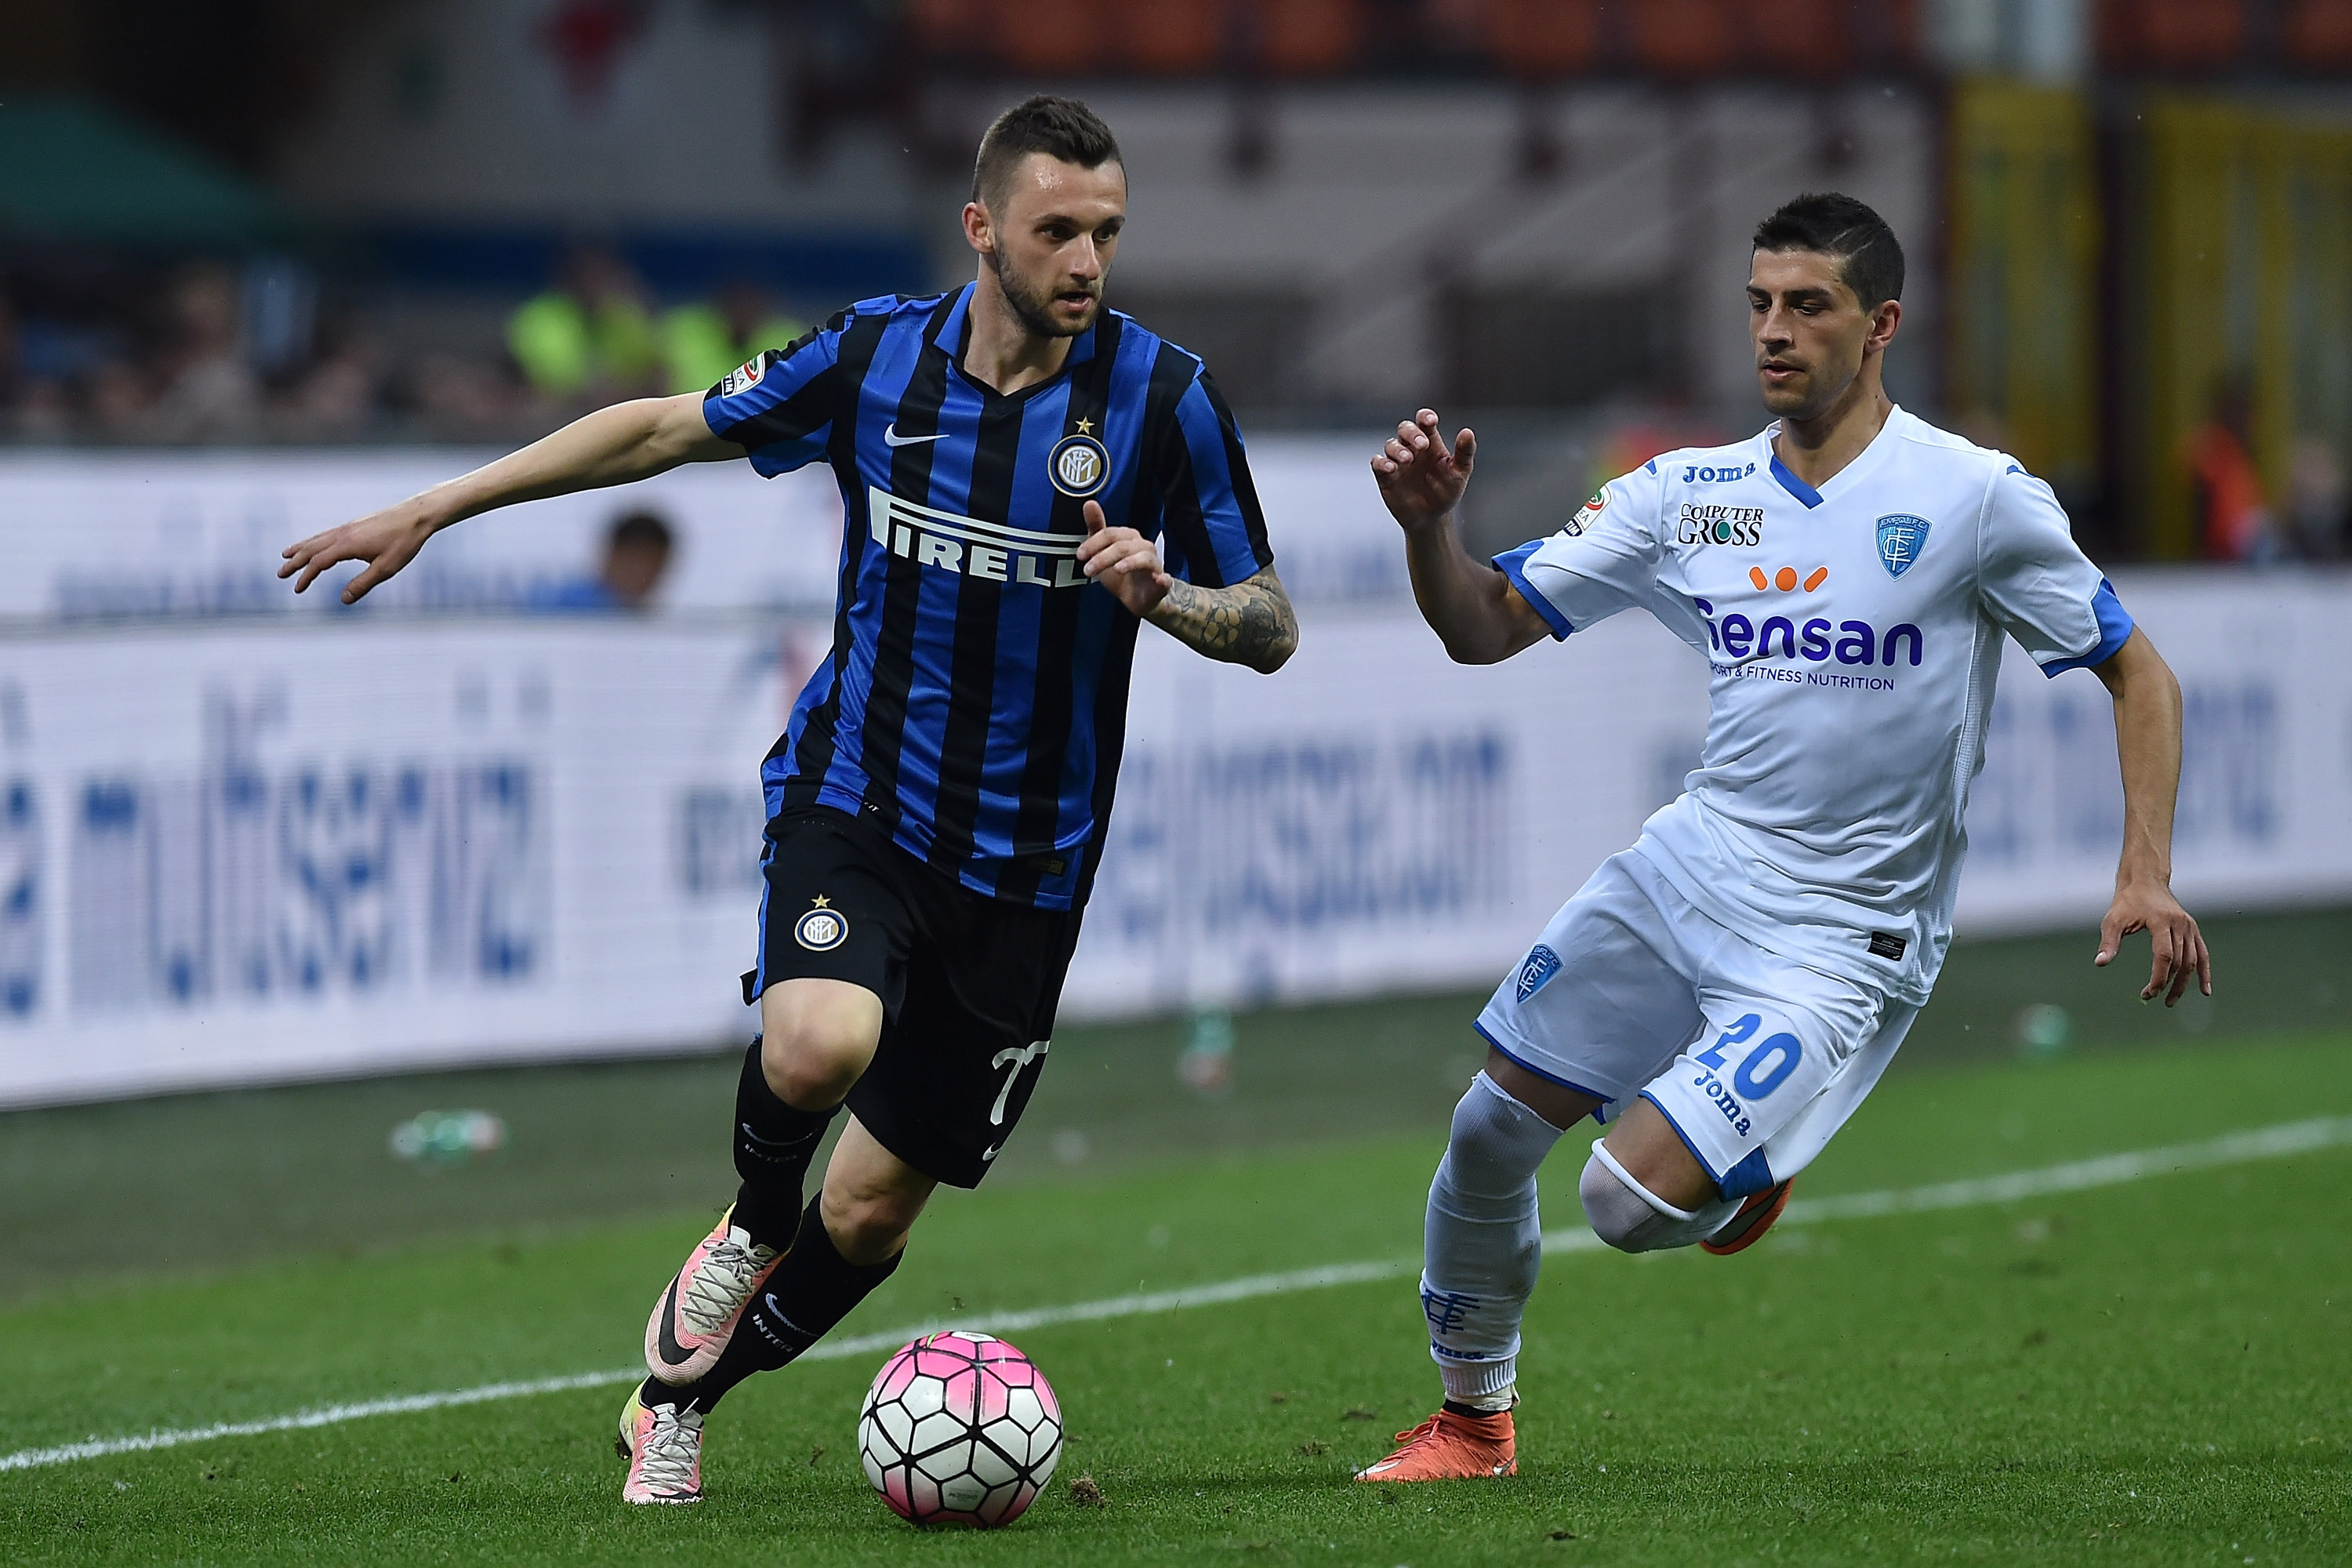 MILAN, ITALY - MAY 07: Marcelo Brozovic (L) of FC Internazionale Milano is challenged by Manuel Pucciarelli of Empoli FC during the Serie A match between FC Internazionale Milano and Empoli FC at Stadio Giuseppe Meazza on May 7, 2016 in Milan, Italy. (Photo by Valerio Pennicino/Getty Images)